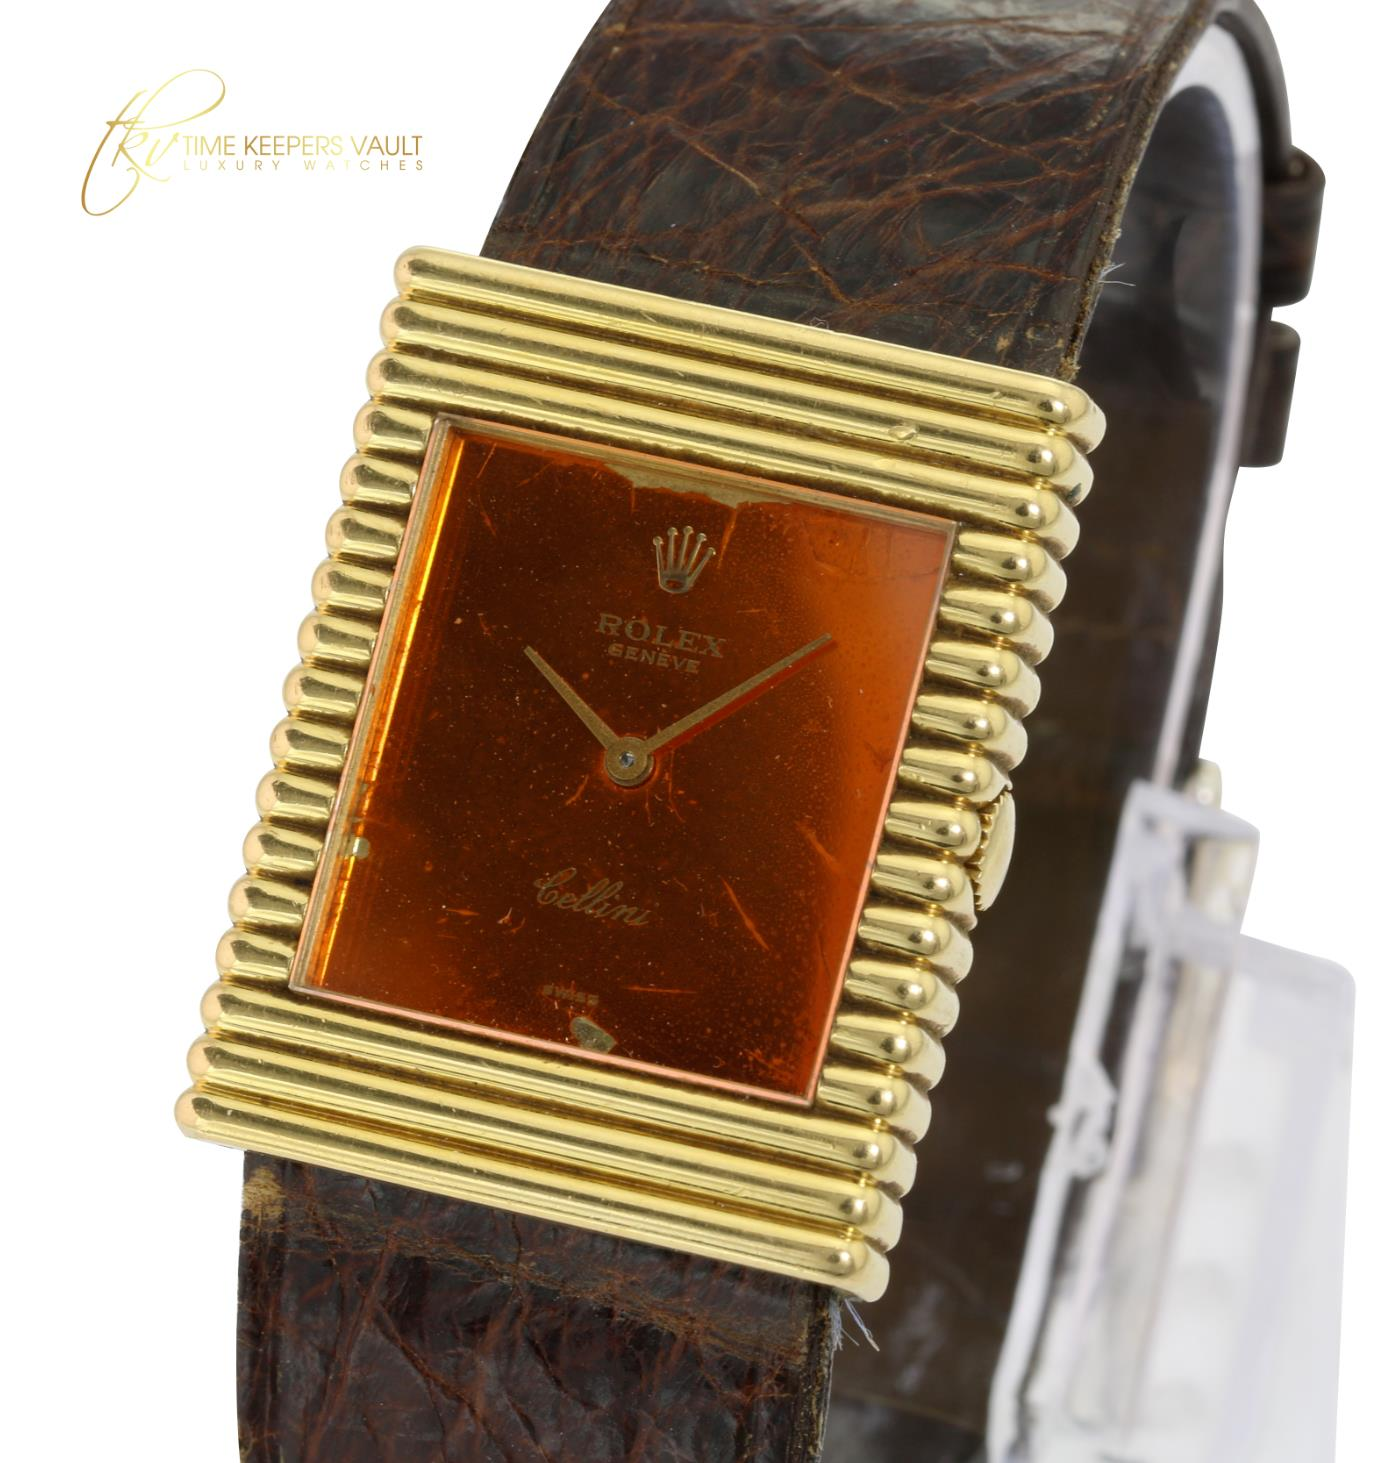 Factory Rolex Cellini 18K Solid Gold  Vintage Swiss Manual Winding Watch